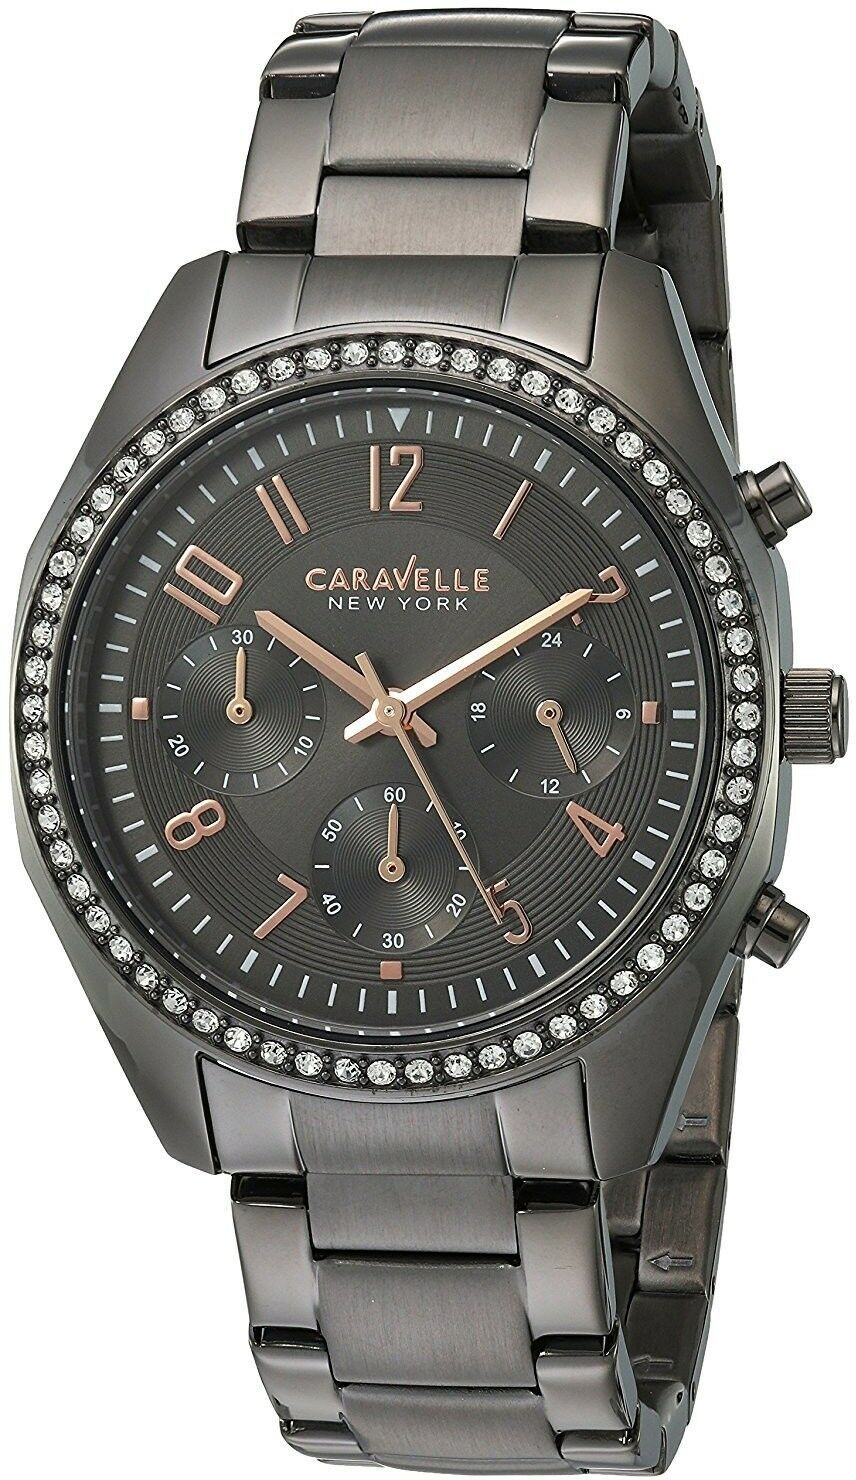 Primary image for Caravelle New York Women's 45L161 Crystal Stainless Steel Watch